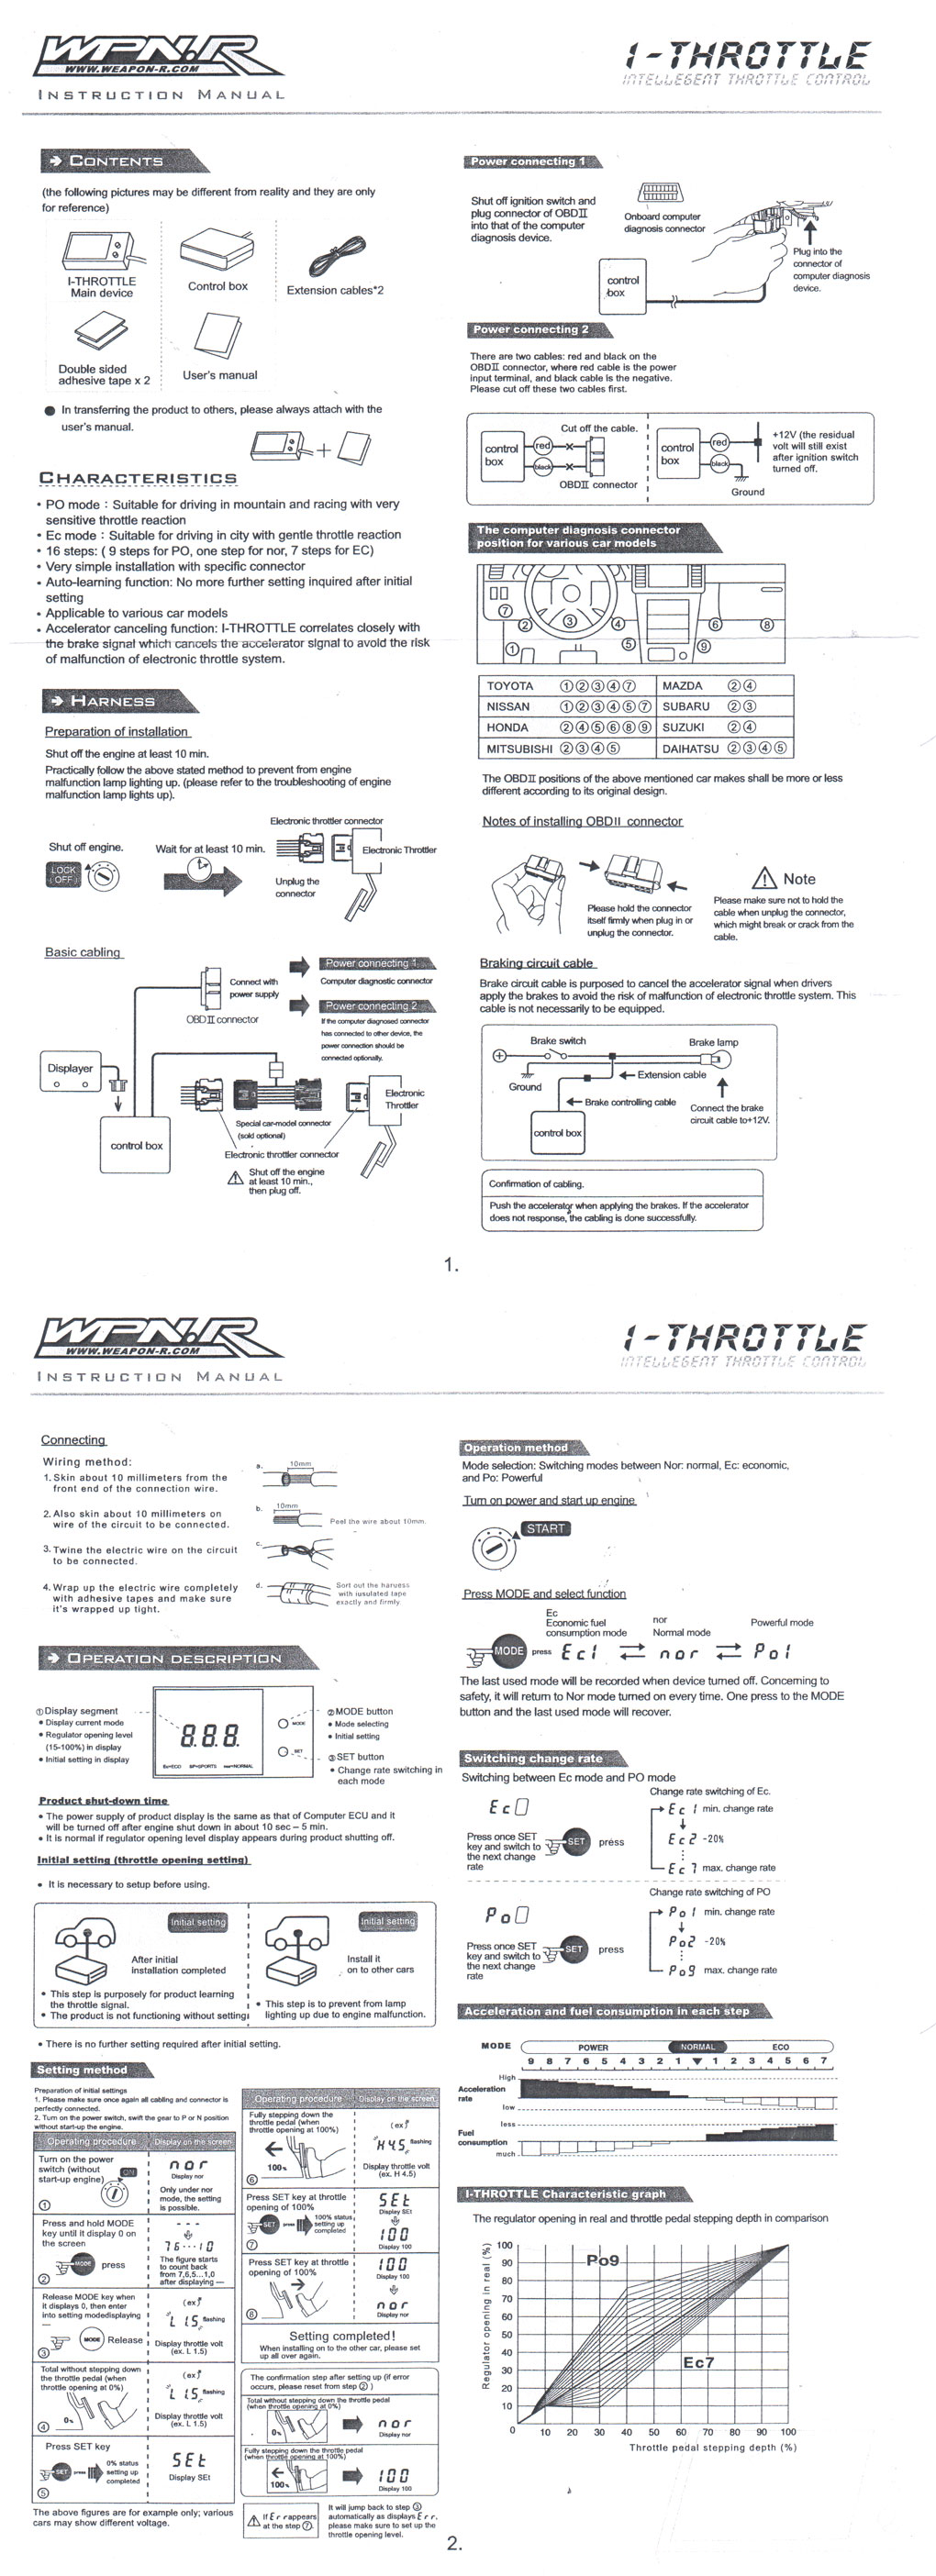 Compatibility Of Controller And Throttle Help Manual Guide